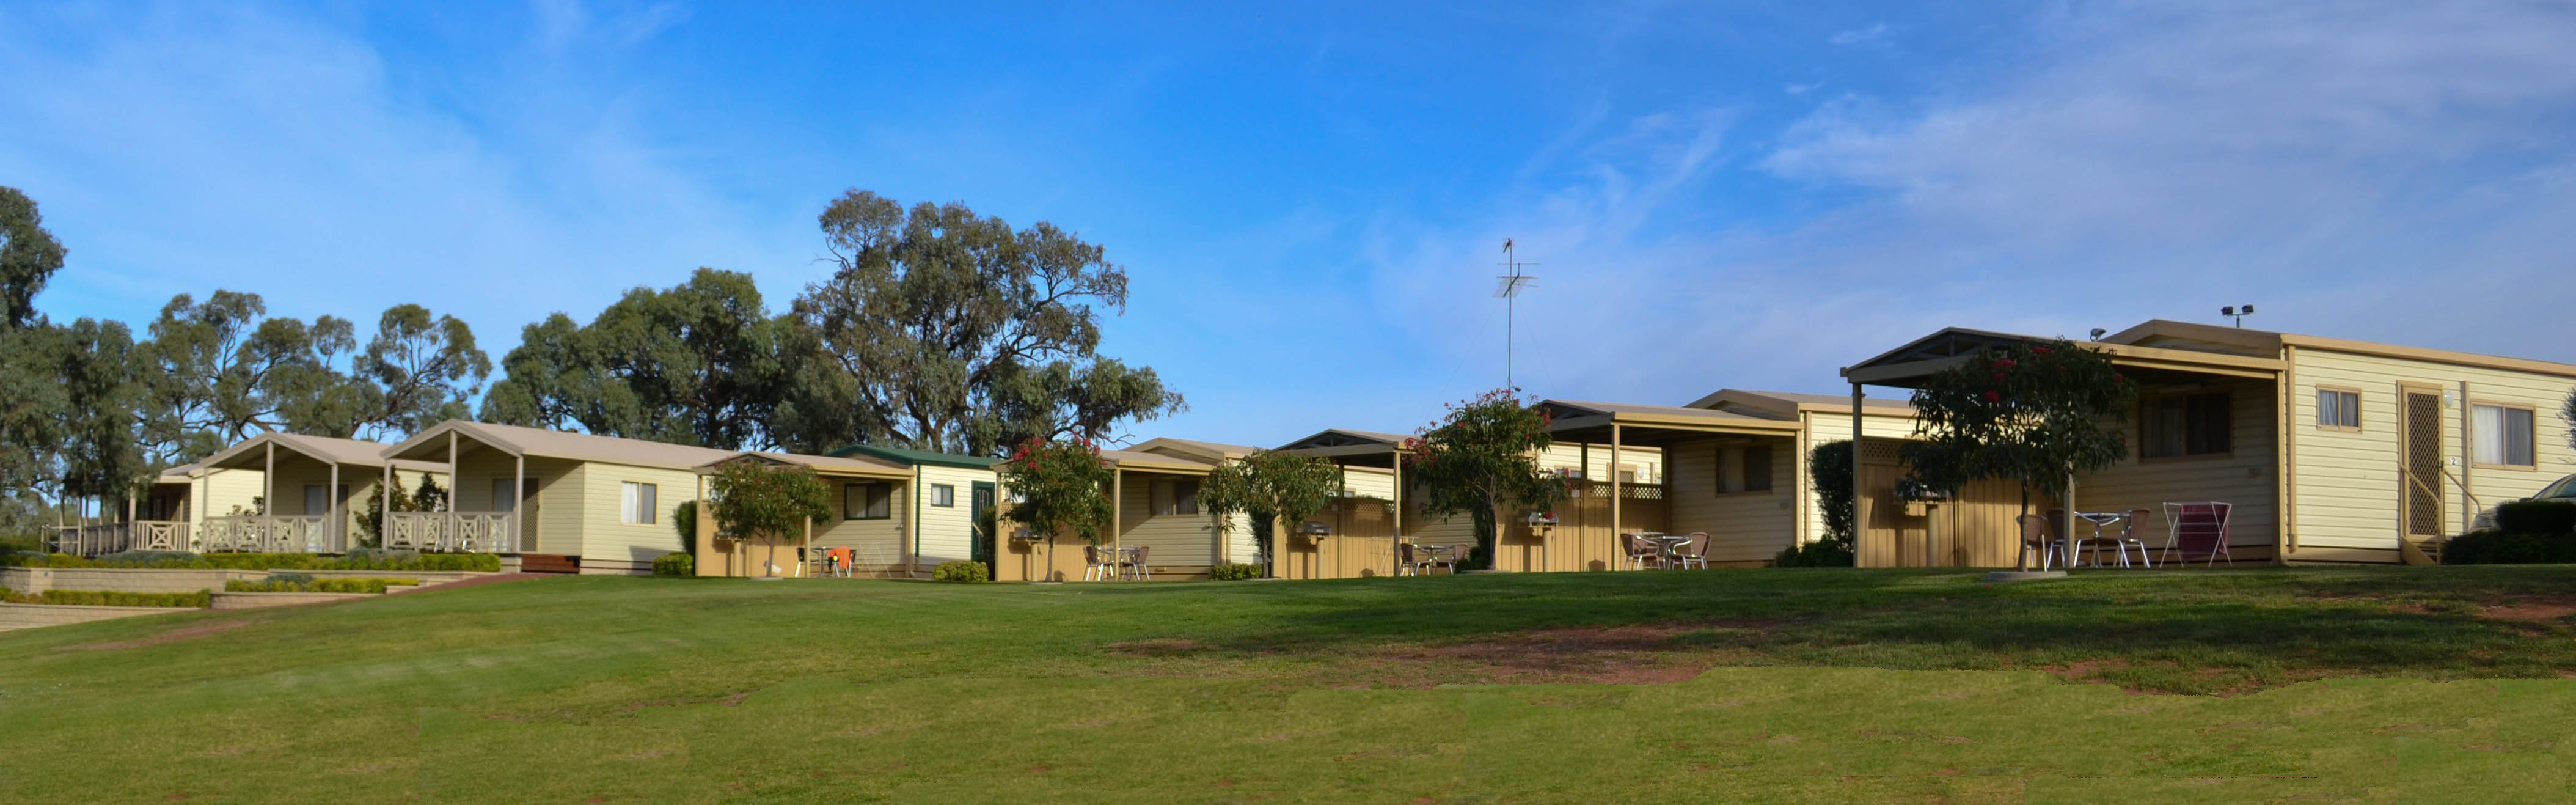 Euston Club Cabin Resort